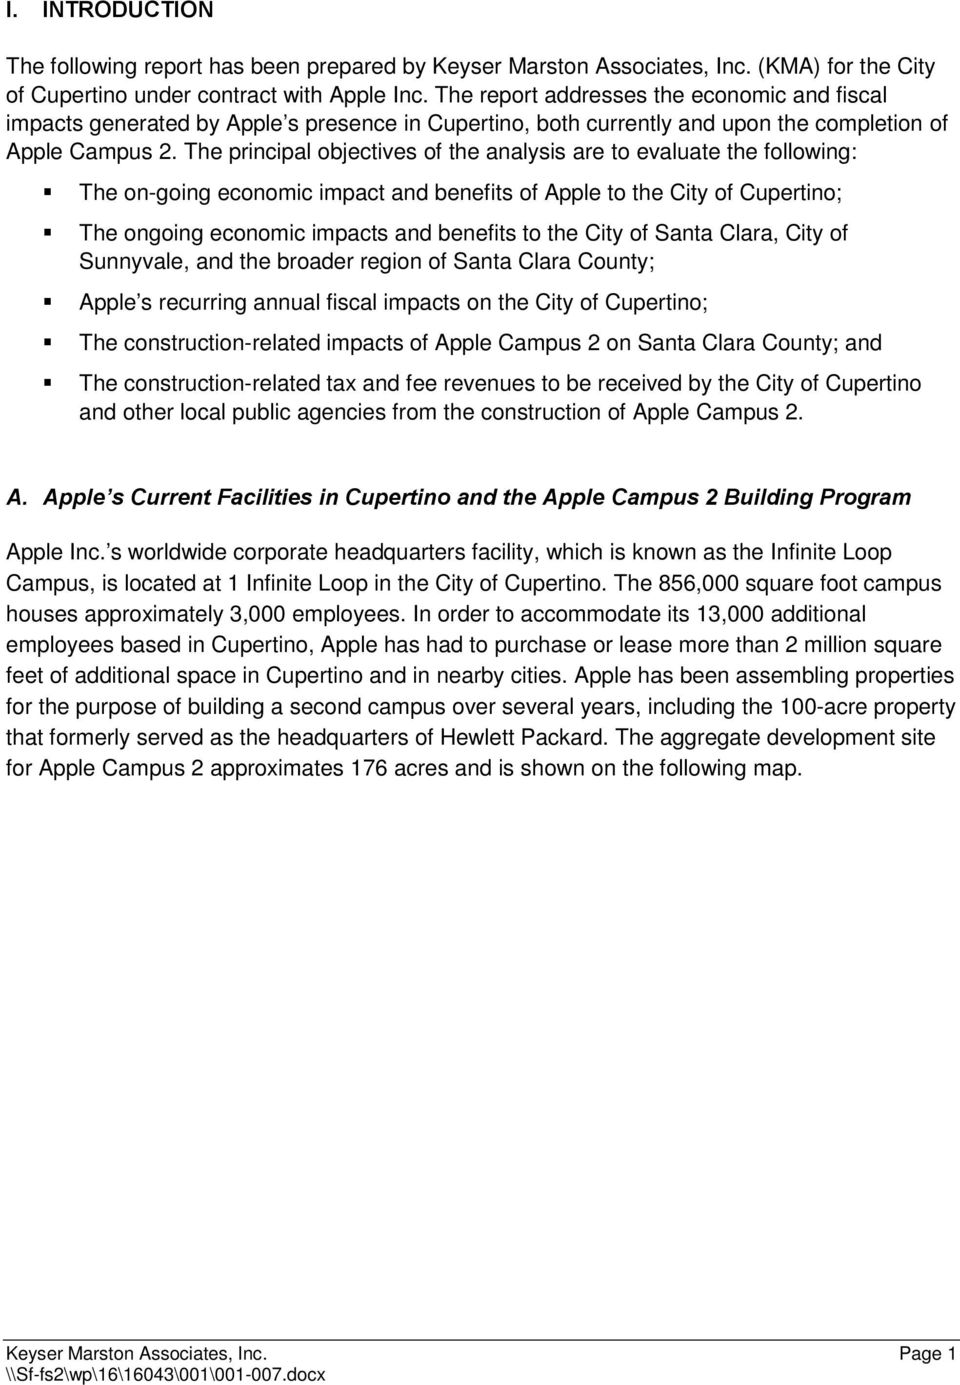 The principal objectives of the analysis are to evaluate the following: The on-going economic impact and benefits of Apple to the City of ; The ongoing economic impacts and benefits to the City of